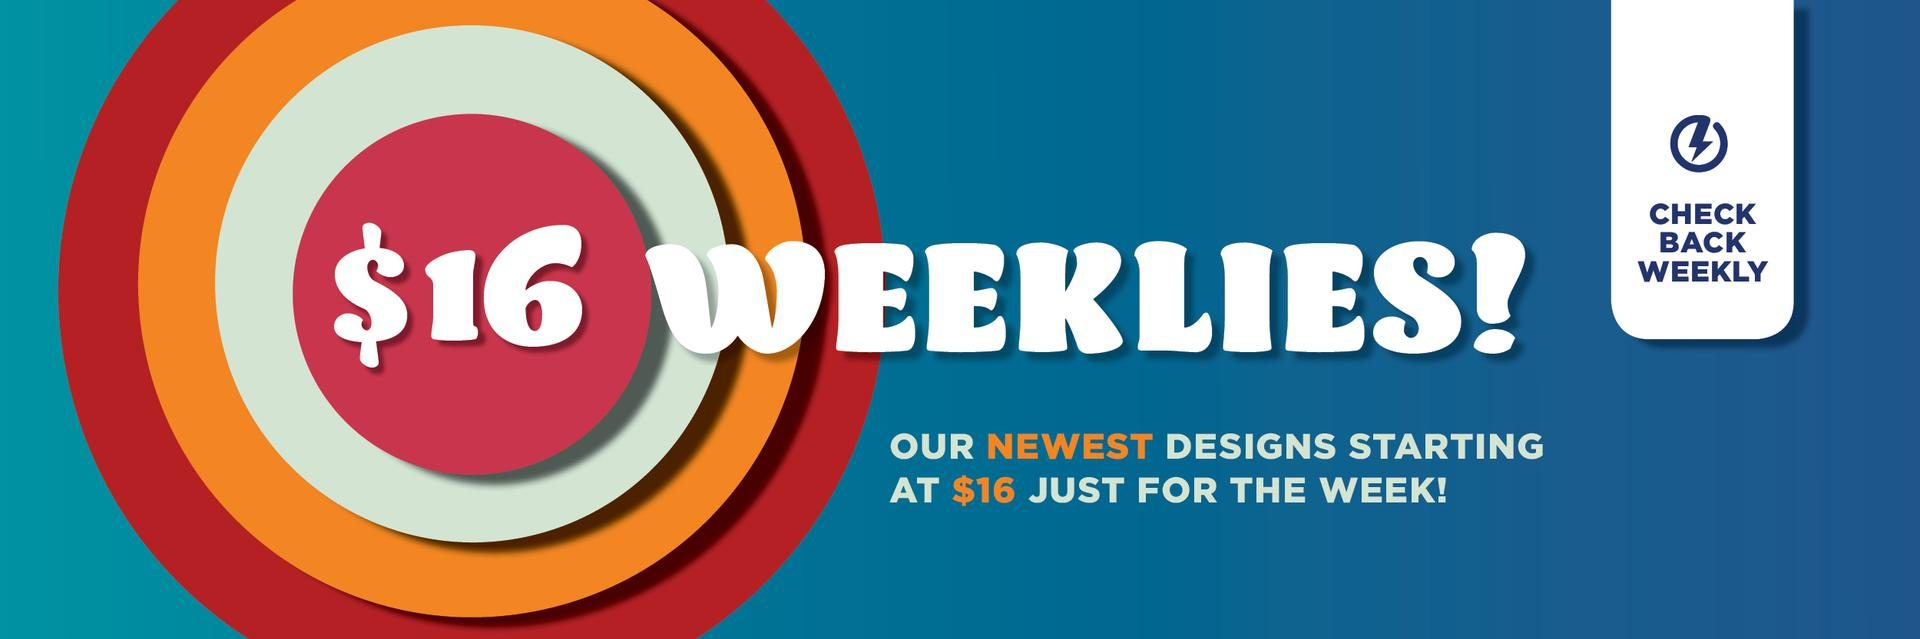 Shop the $16 Weeklies Collection